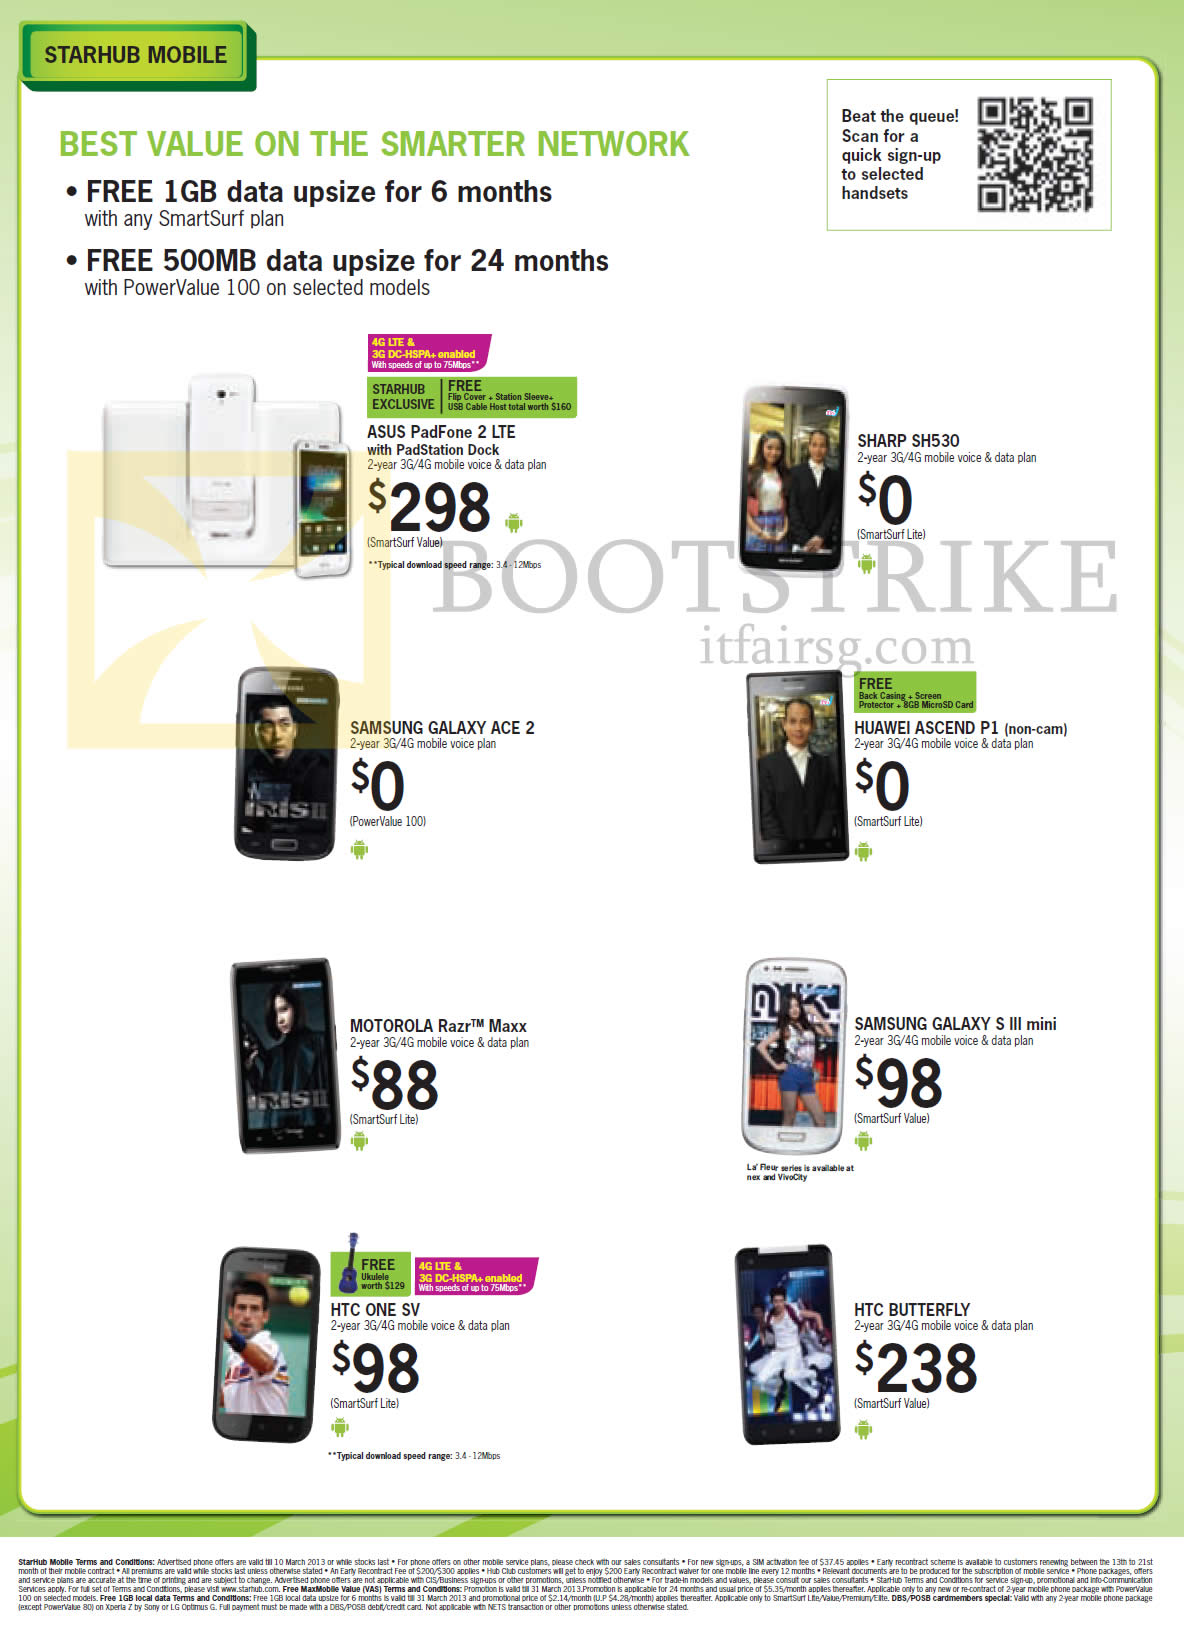 IT SHOW 2013 price list image brochure of Starhub Mobile Phones ASUS PadFone 2 LTE, Sharp SH530, Samsung Galaxy Ace 2, Huawei Ascend P1, Motorola Razr Maxx, Samsung Galaxy S III Mini, HTC One SV, Butterfly